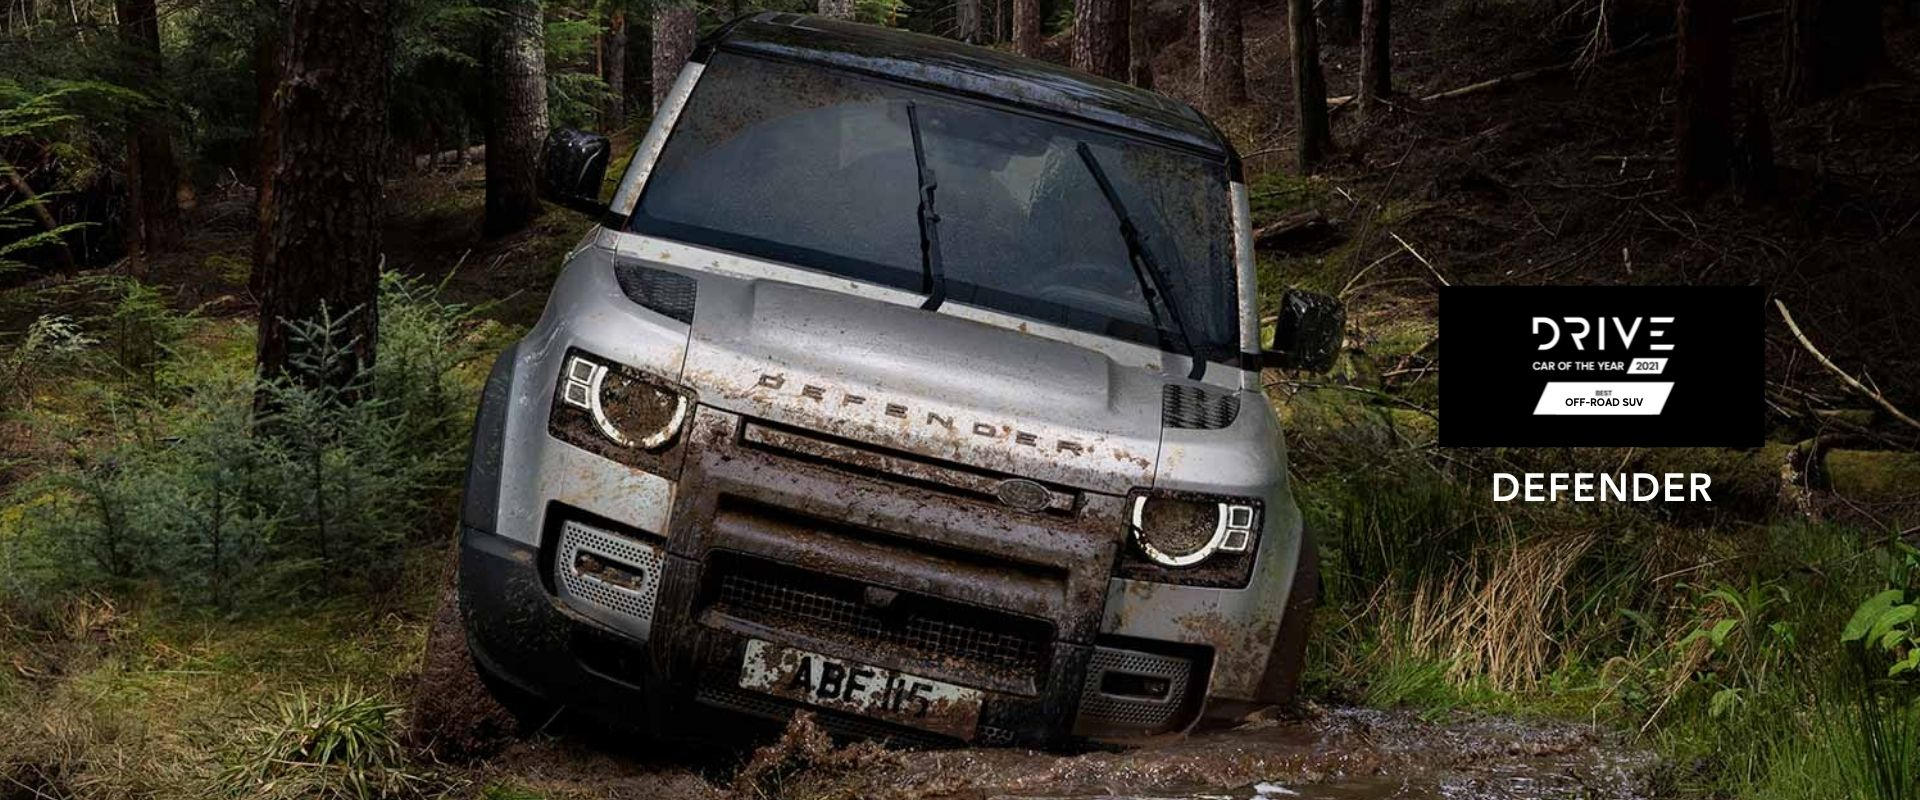 Land Rover Defender - Drive Car of the Year